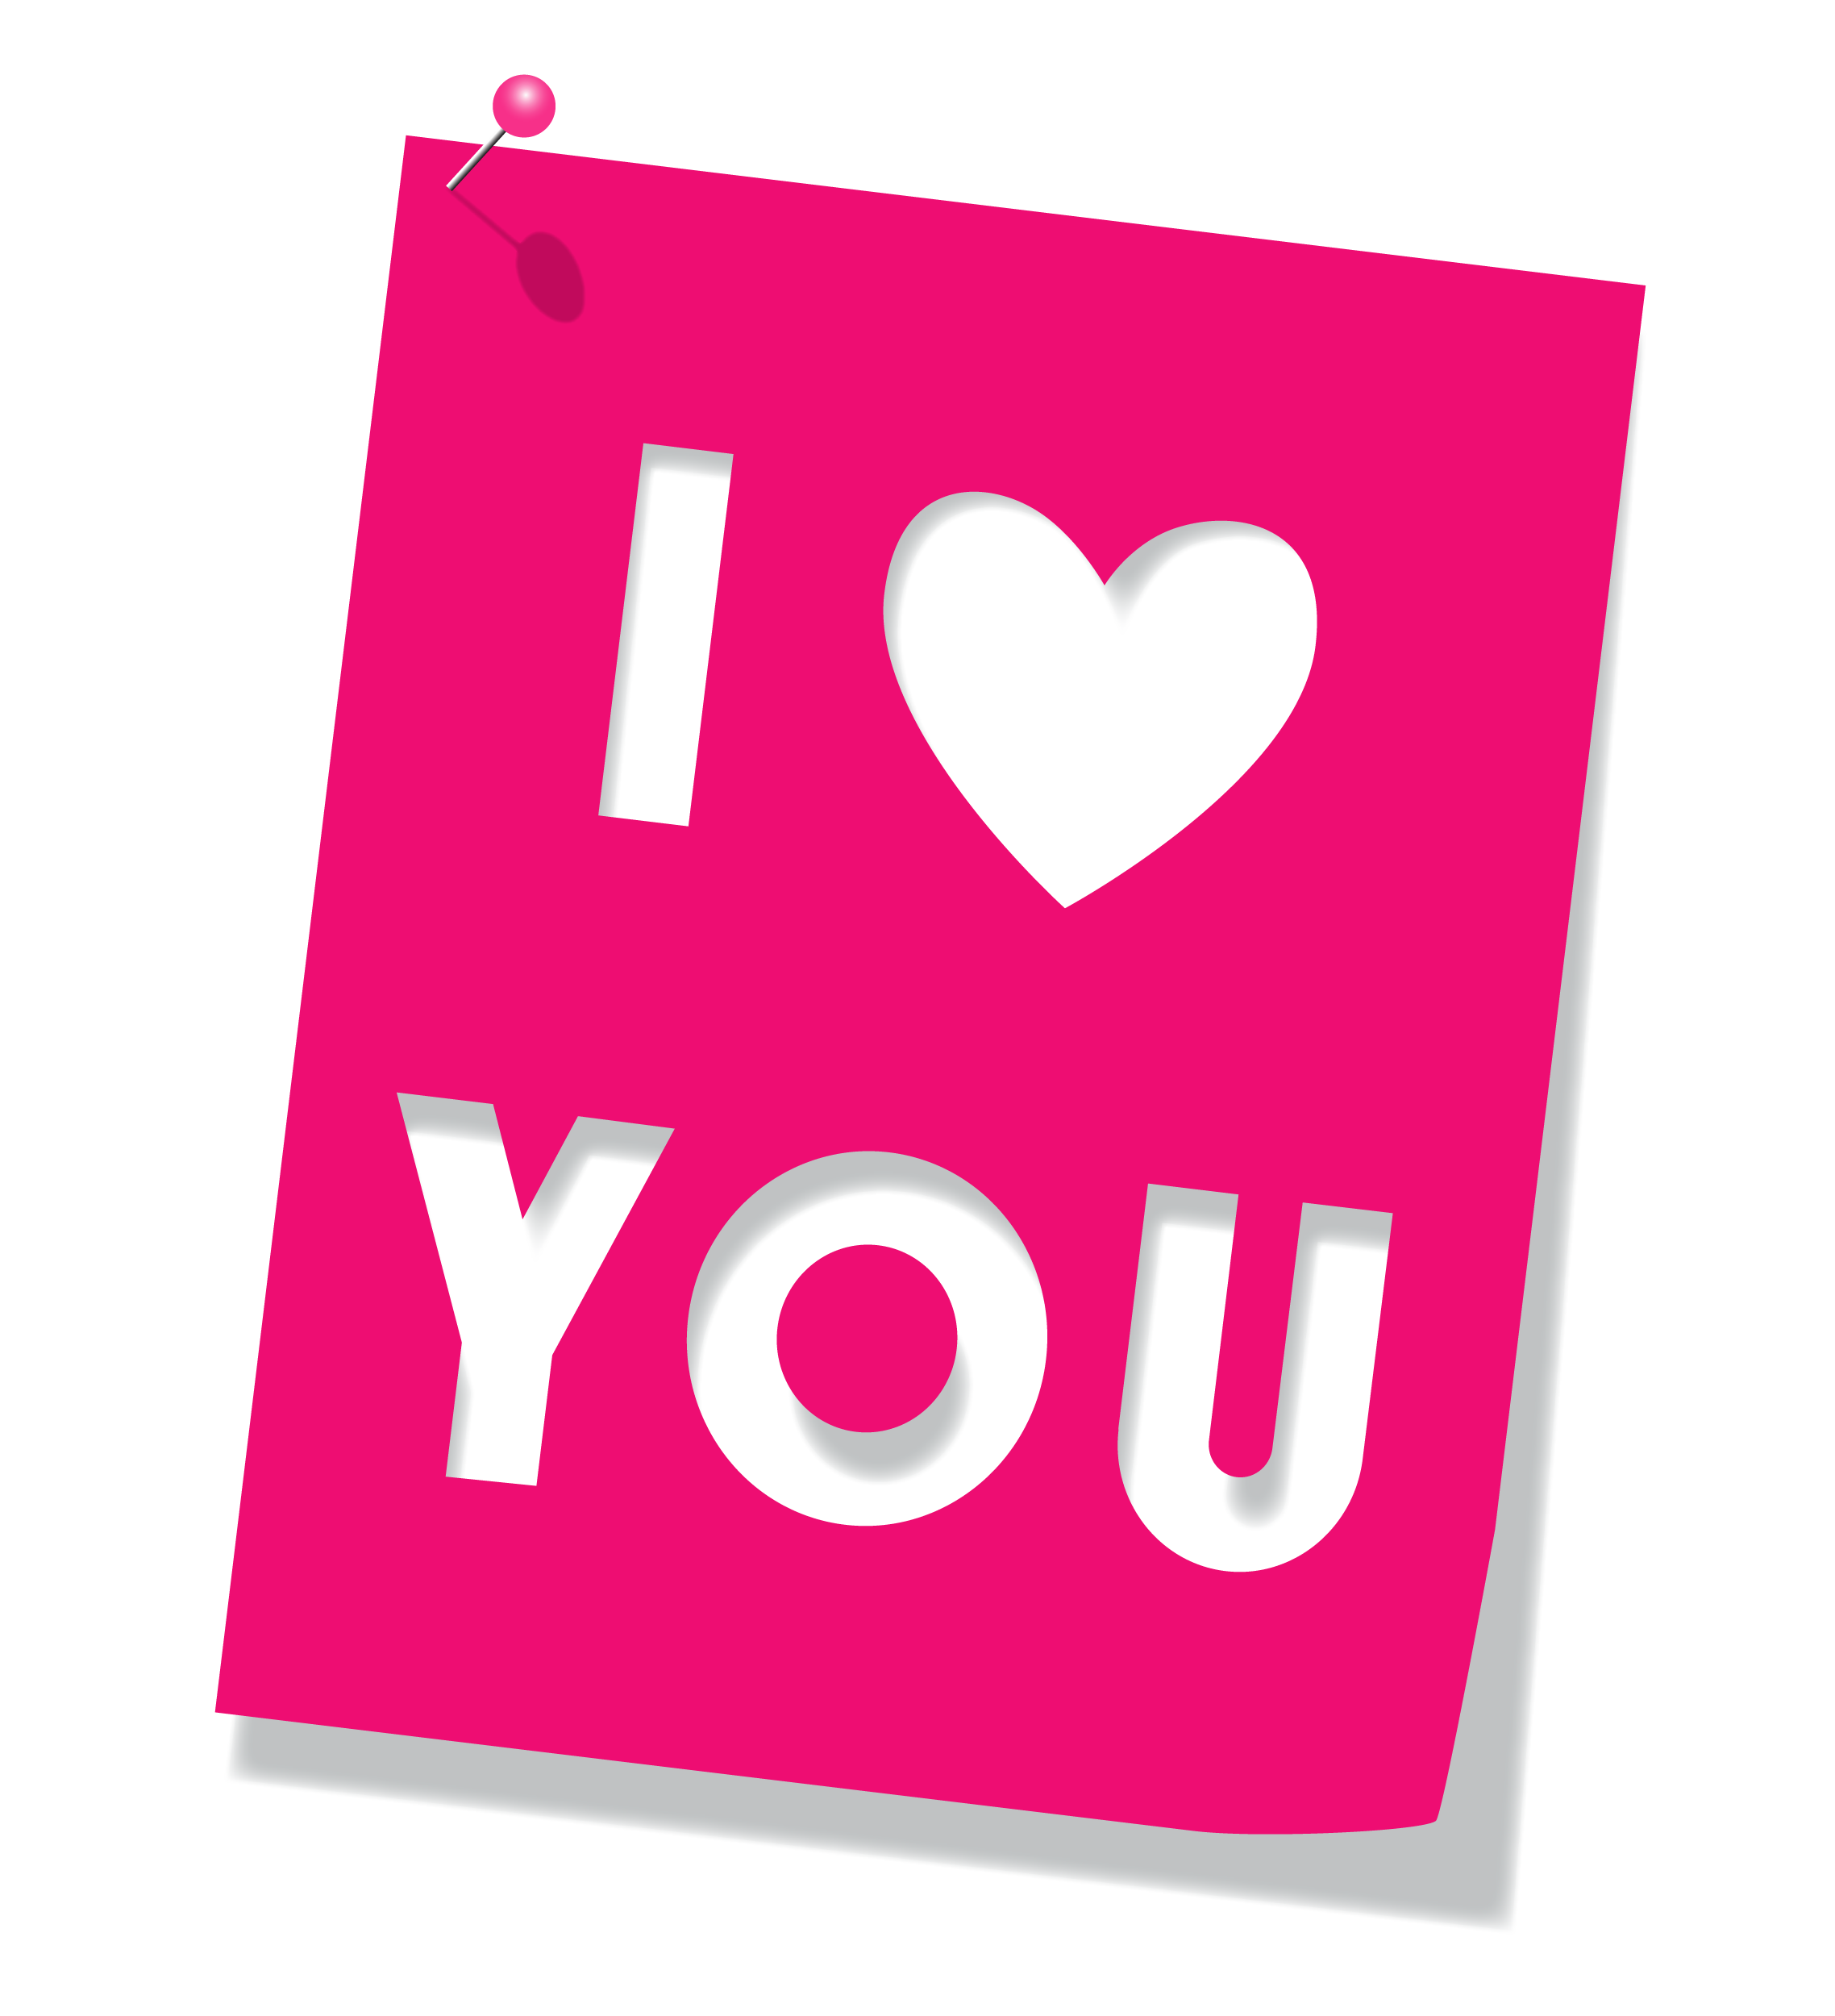 Panda free images loveclipart. Love clipart logo